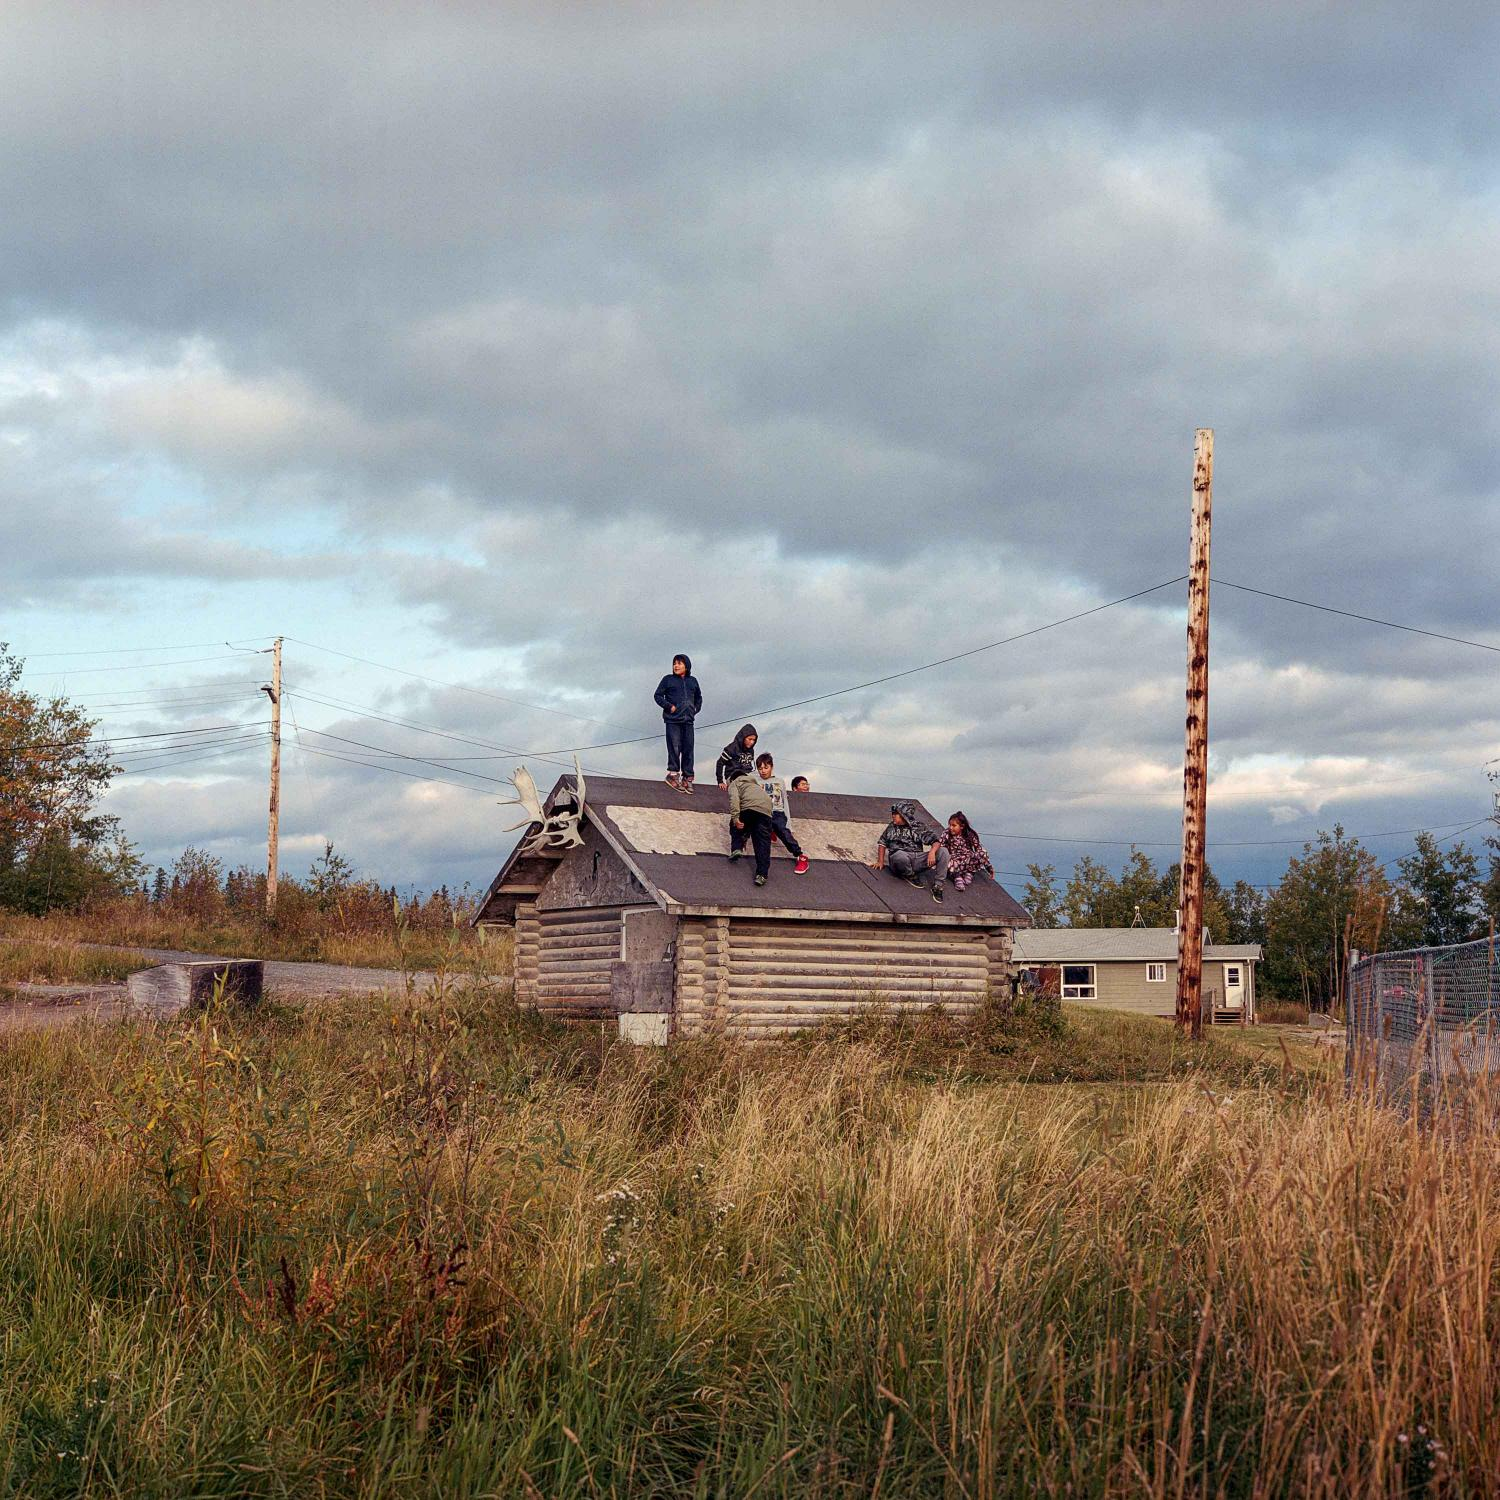 September 13 2016. Children play on the roof of an old cabin in the community of Cross Lake, home to the Pimicikamak Cree Nation in Northern Manitoba, Canada. Regulation from the Jen Peg dam has drastically impacted the community through drastic and sudden fluctuations in water level causing substantial long-term erosion, difficulty navigating the water by boat, and dangerous ice conditions for travel in the winter months. The cumulative impacts have devastated wildlife, fish populations, and eroded a cultural way of life. Cross Lake has dealt with a rash of youth suicides in recent years, which brought the community into the national spotlight. In 2016, 5 youth killed themselves and there were 140 expressions of desire or suicide attempts, that year they had the highest suicide rate in Canada.